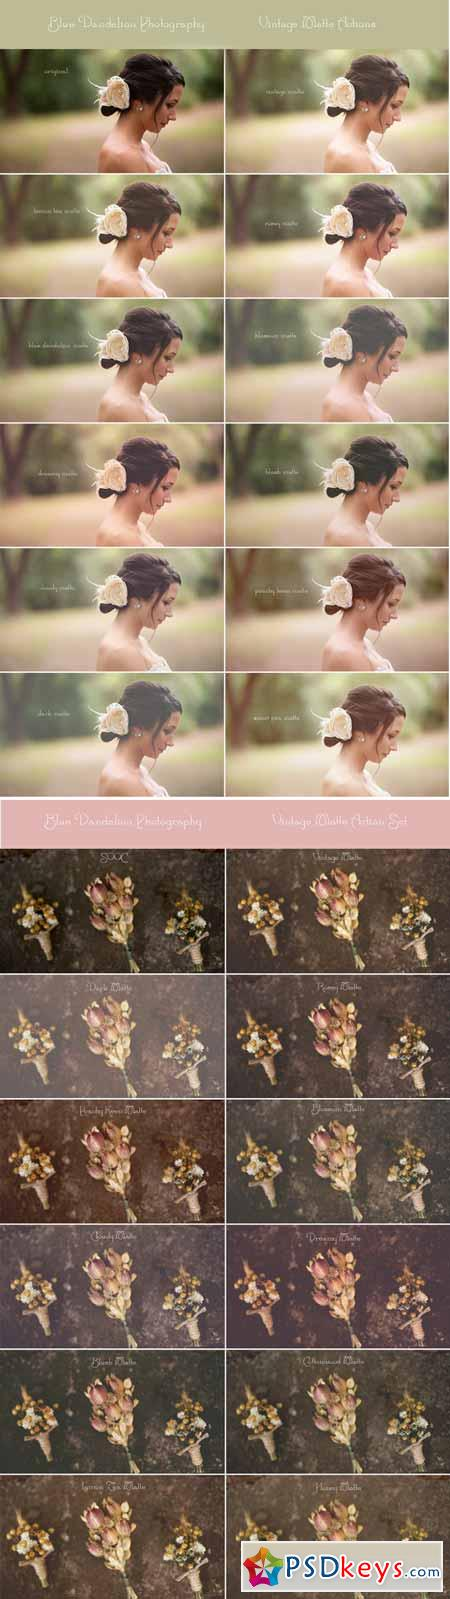 BDP Vintage Matte Action Set for Photoshop